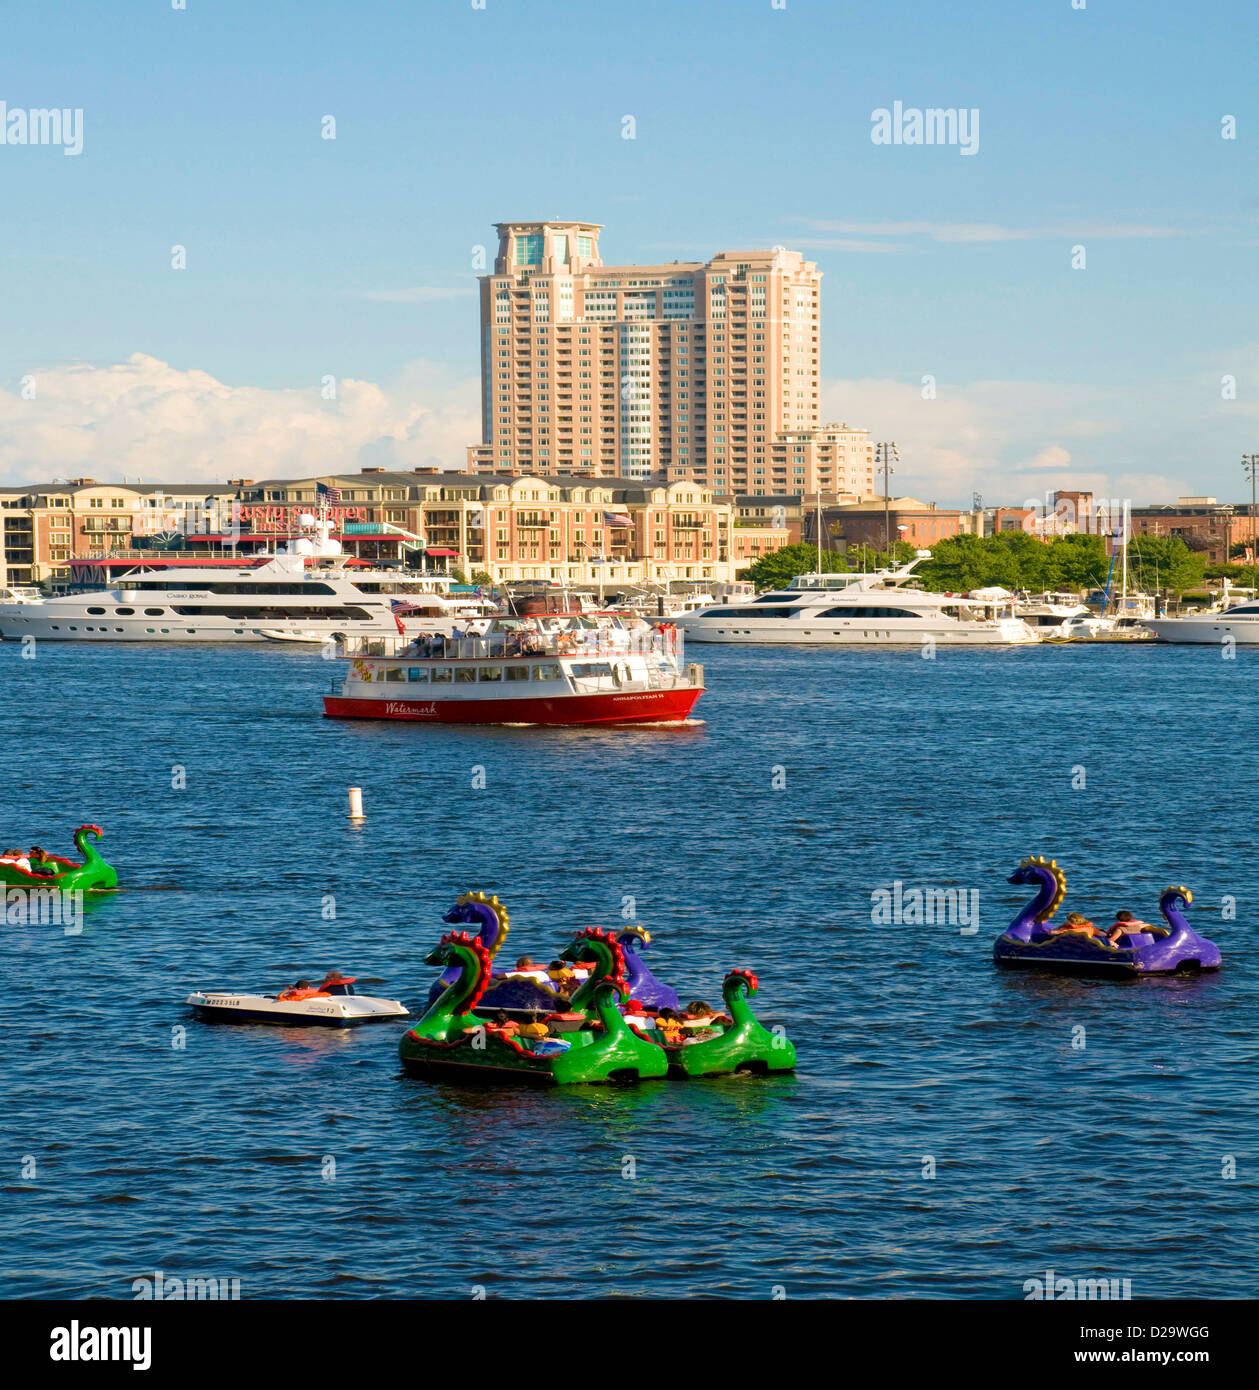 Baltimore Harbor, High Rise Buildings, Maryland, Paddle Boats, Water Taxis, Yachts - Stock Image